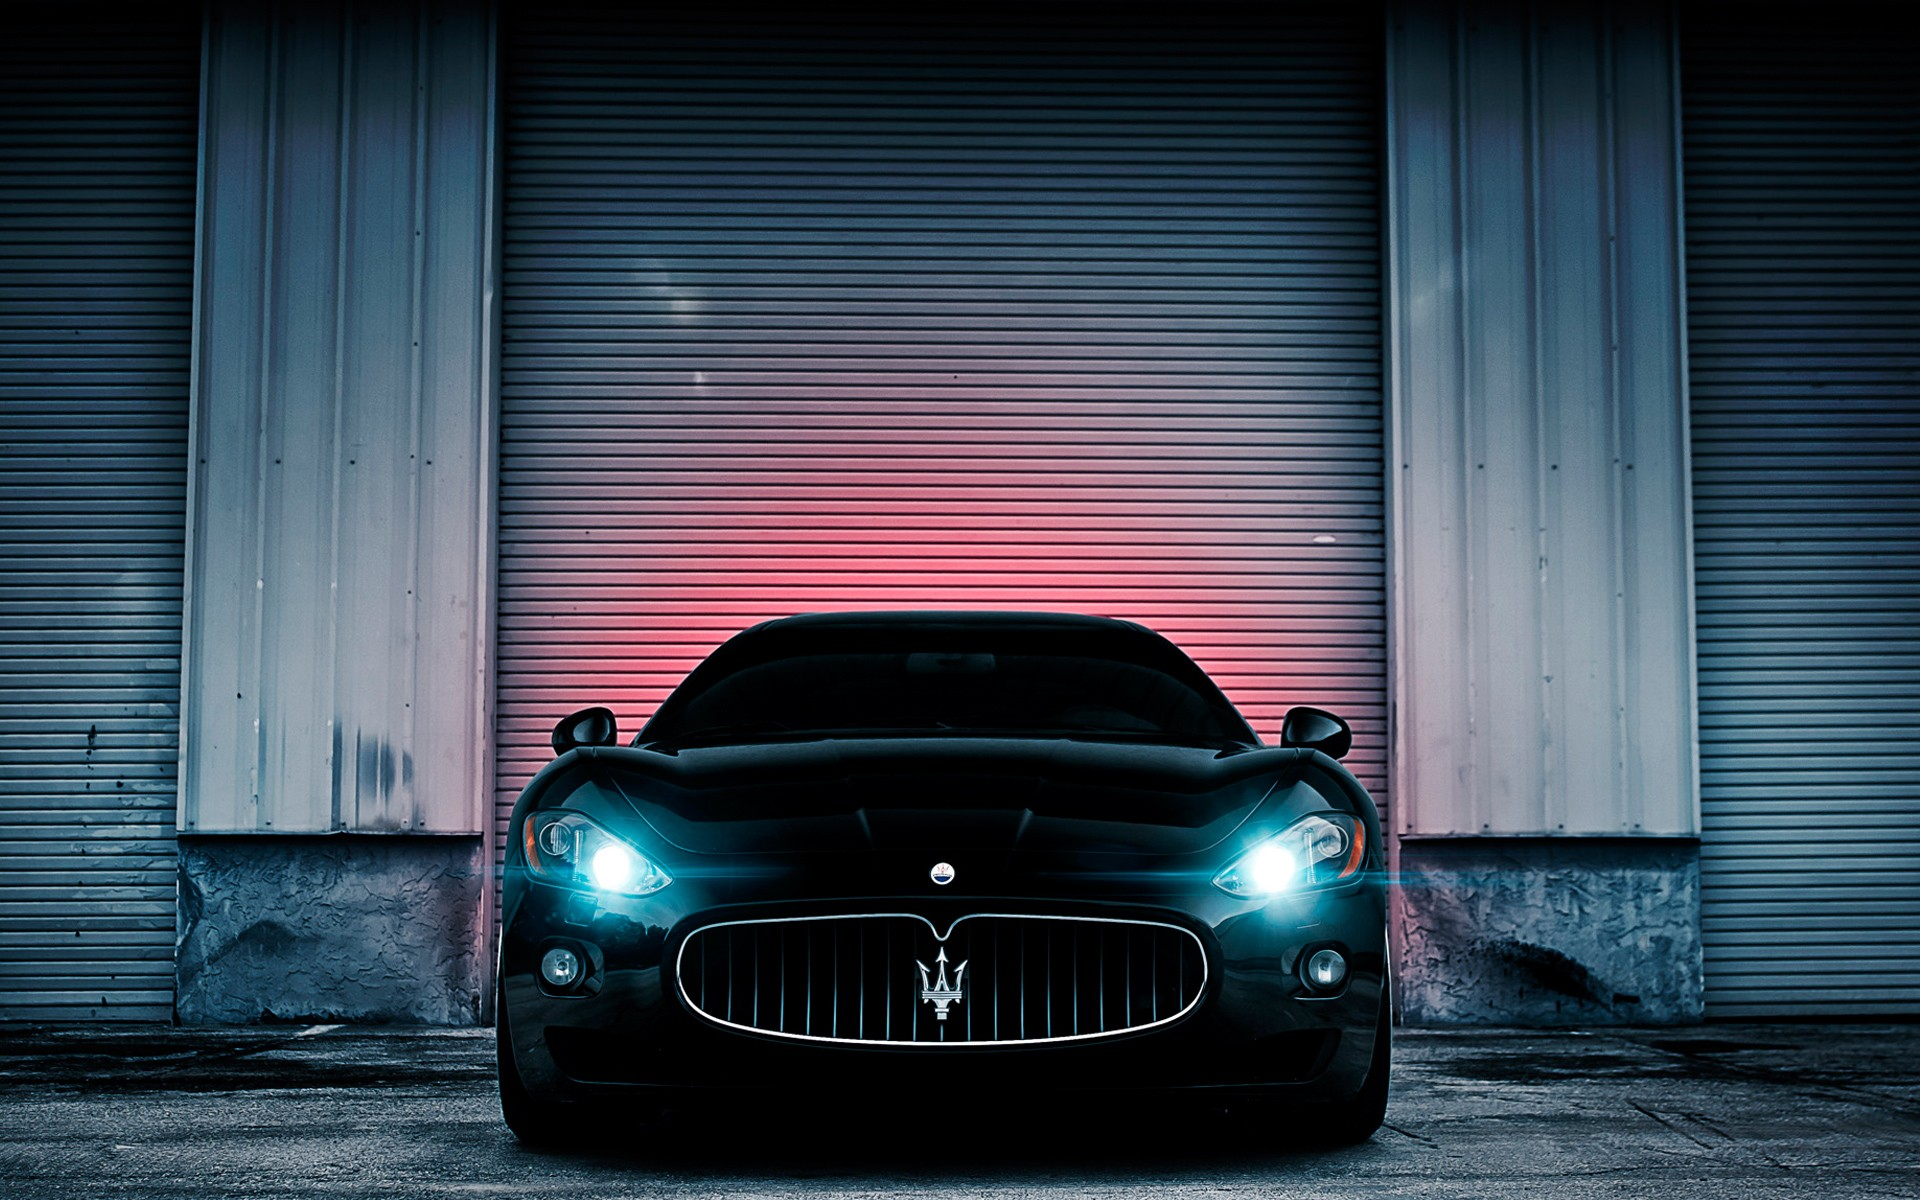 Maserati Wallpaper Hd Widescreen